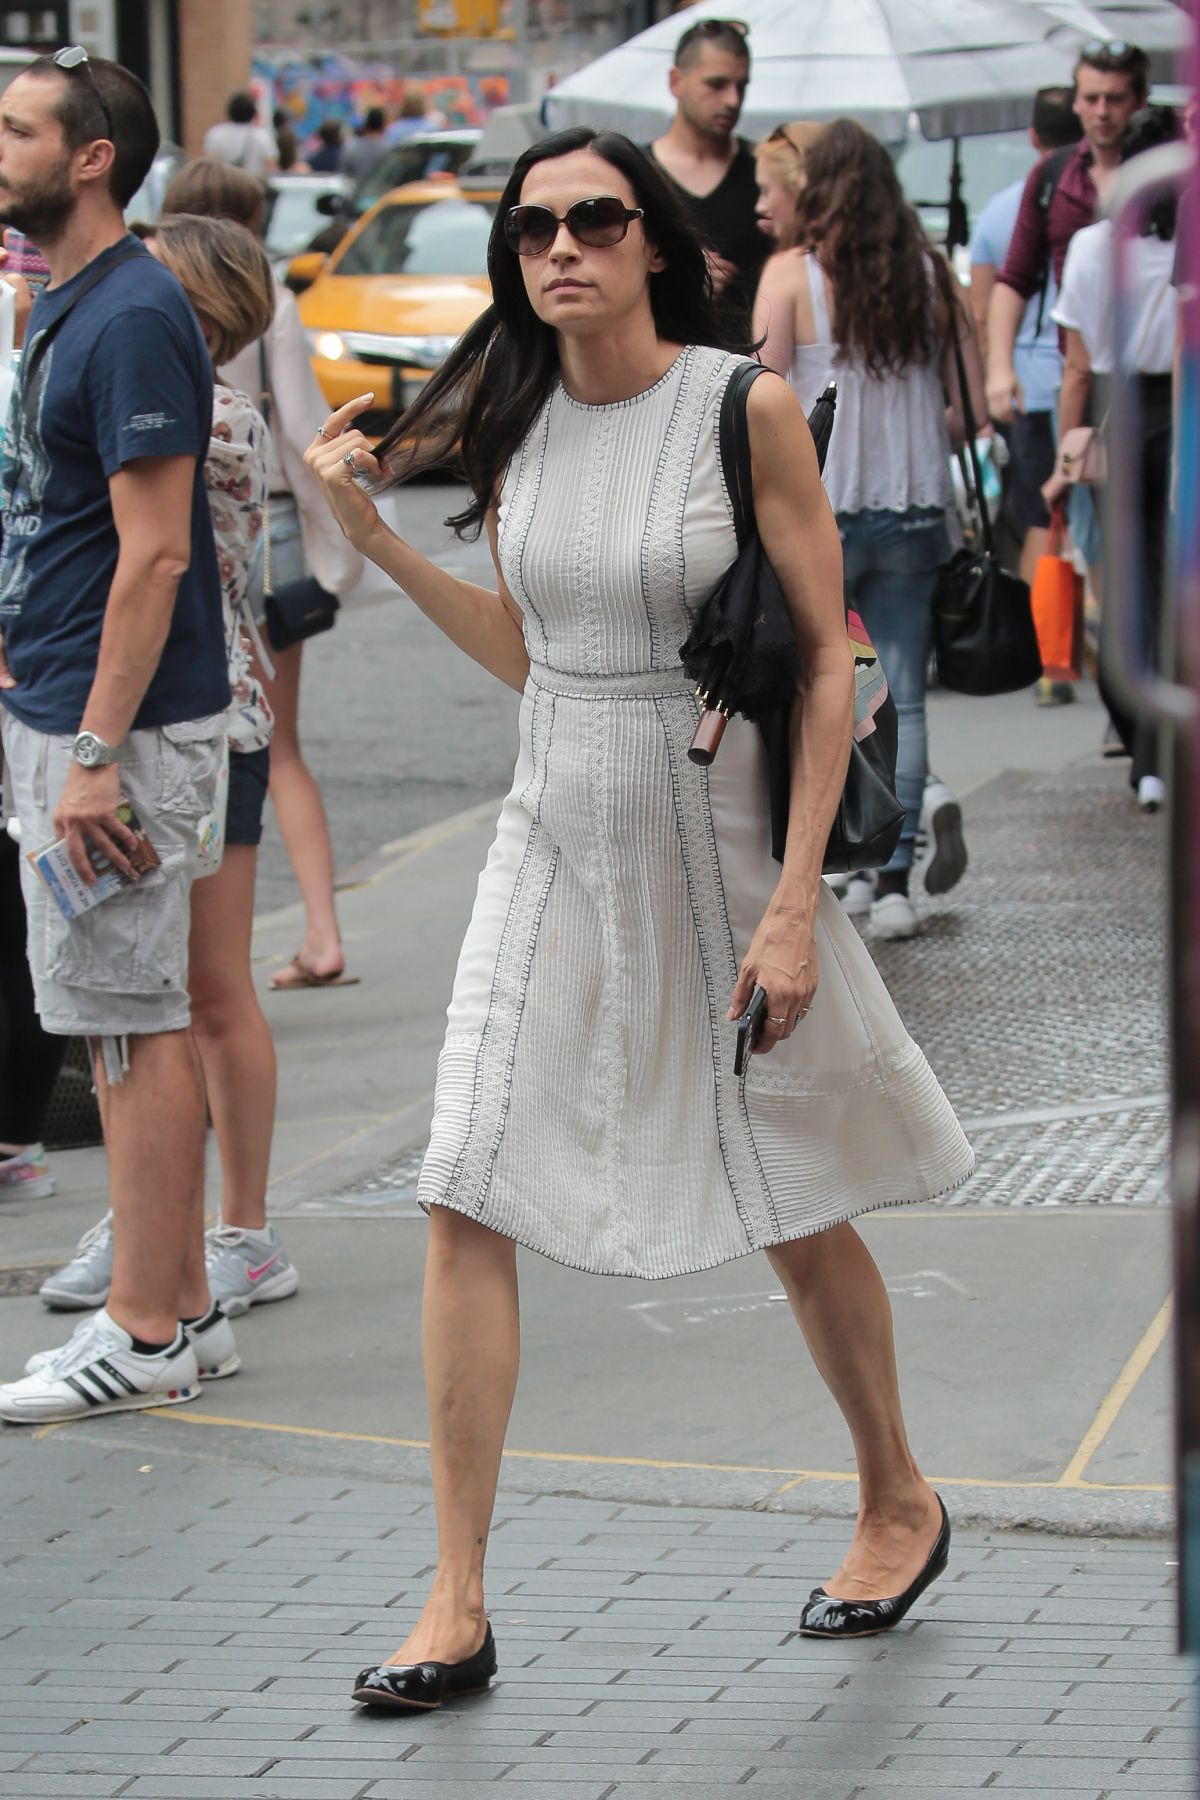 FAMKE JANSSEN Out and About in New York 08/05/2016